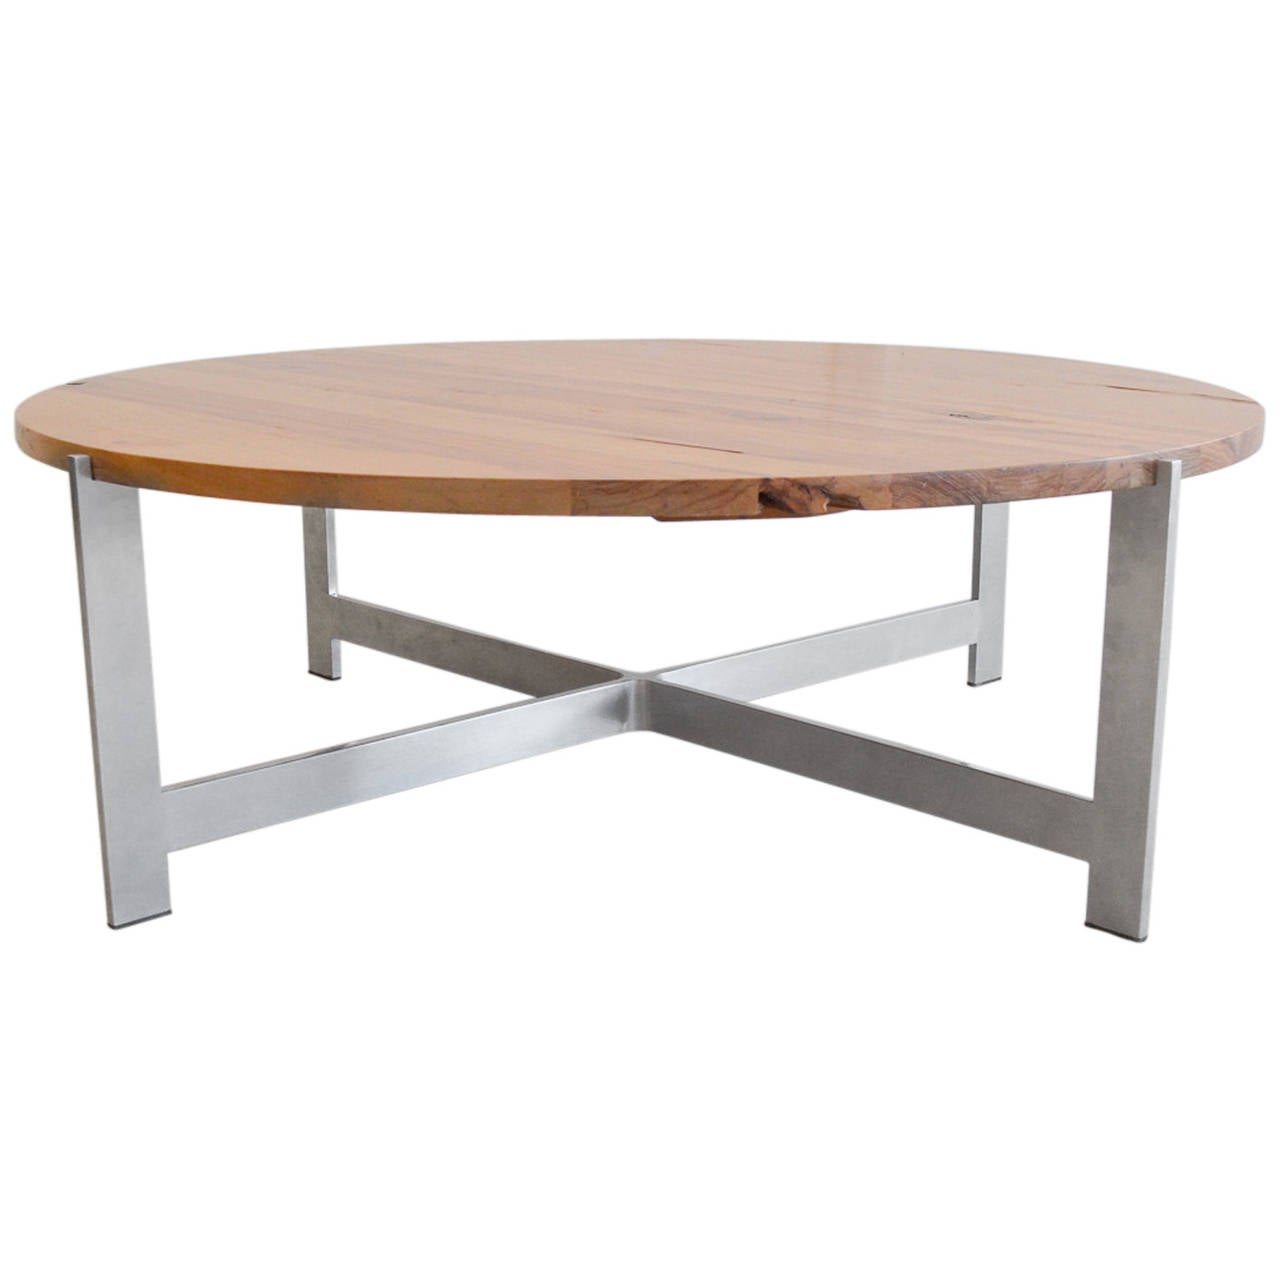 Round wood coffee table with aluminum x base at 1stdibs for Circle table